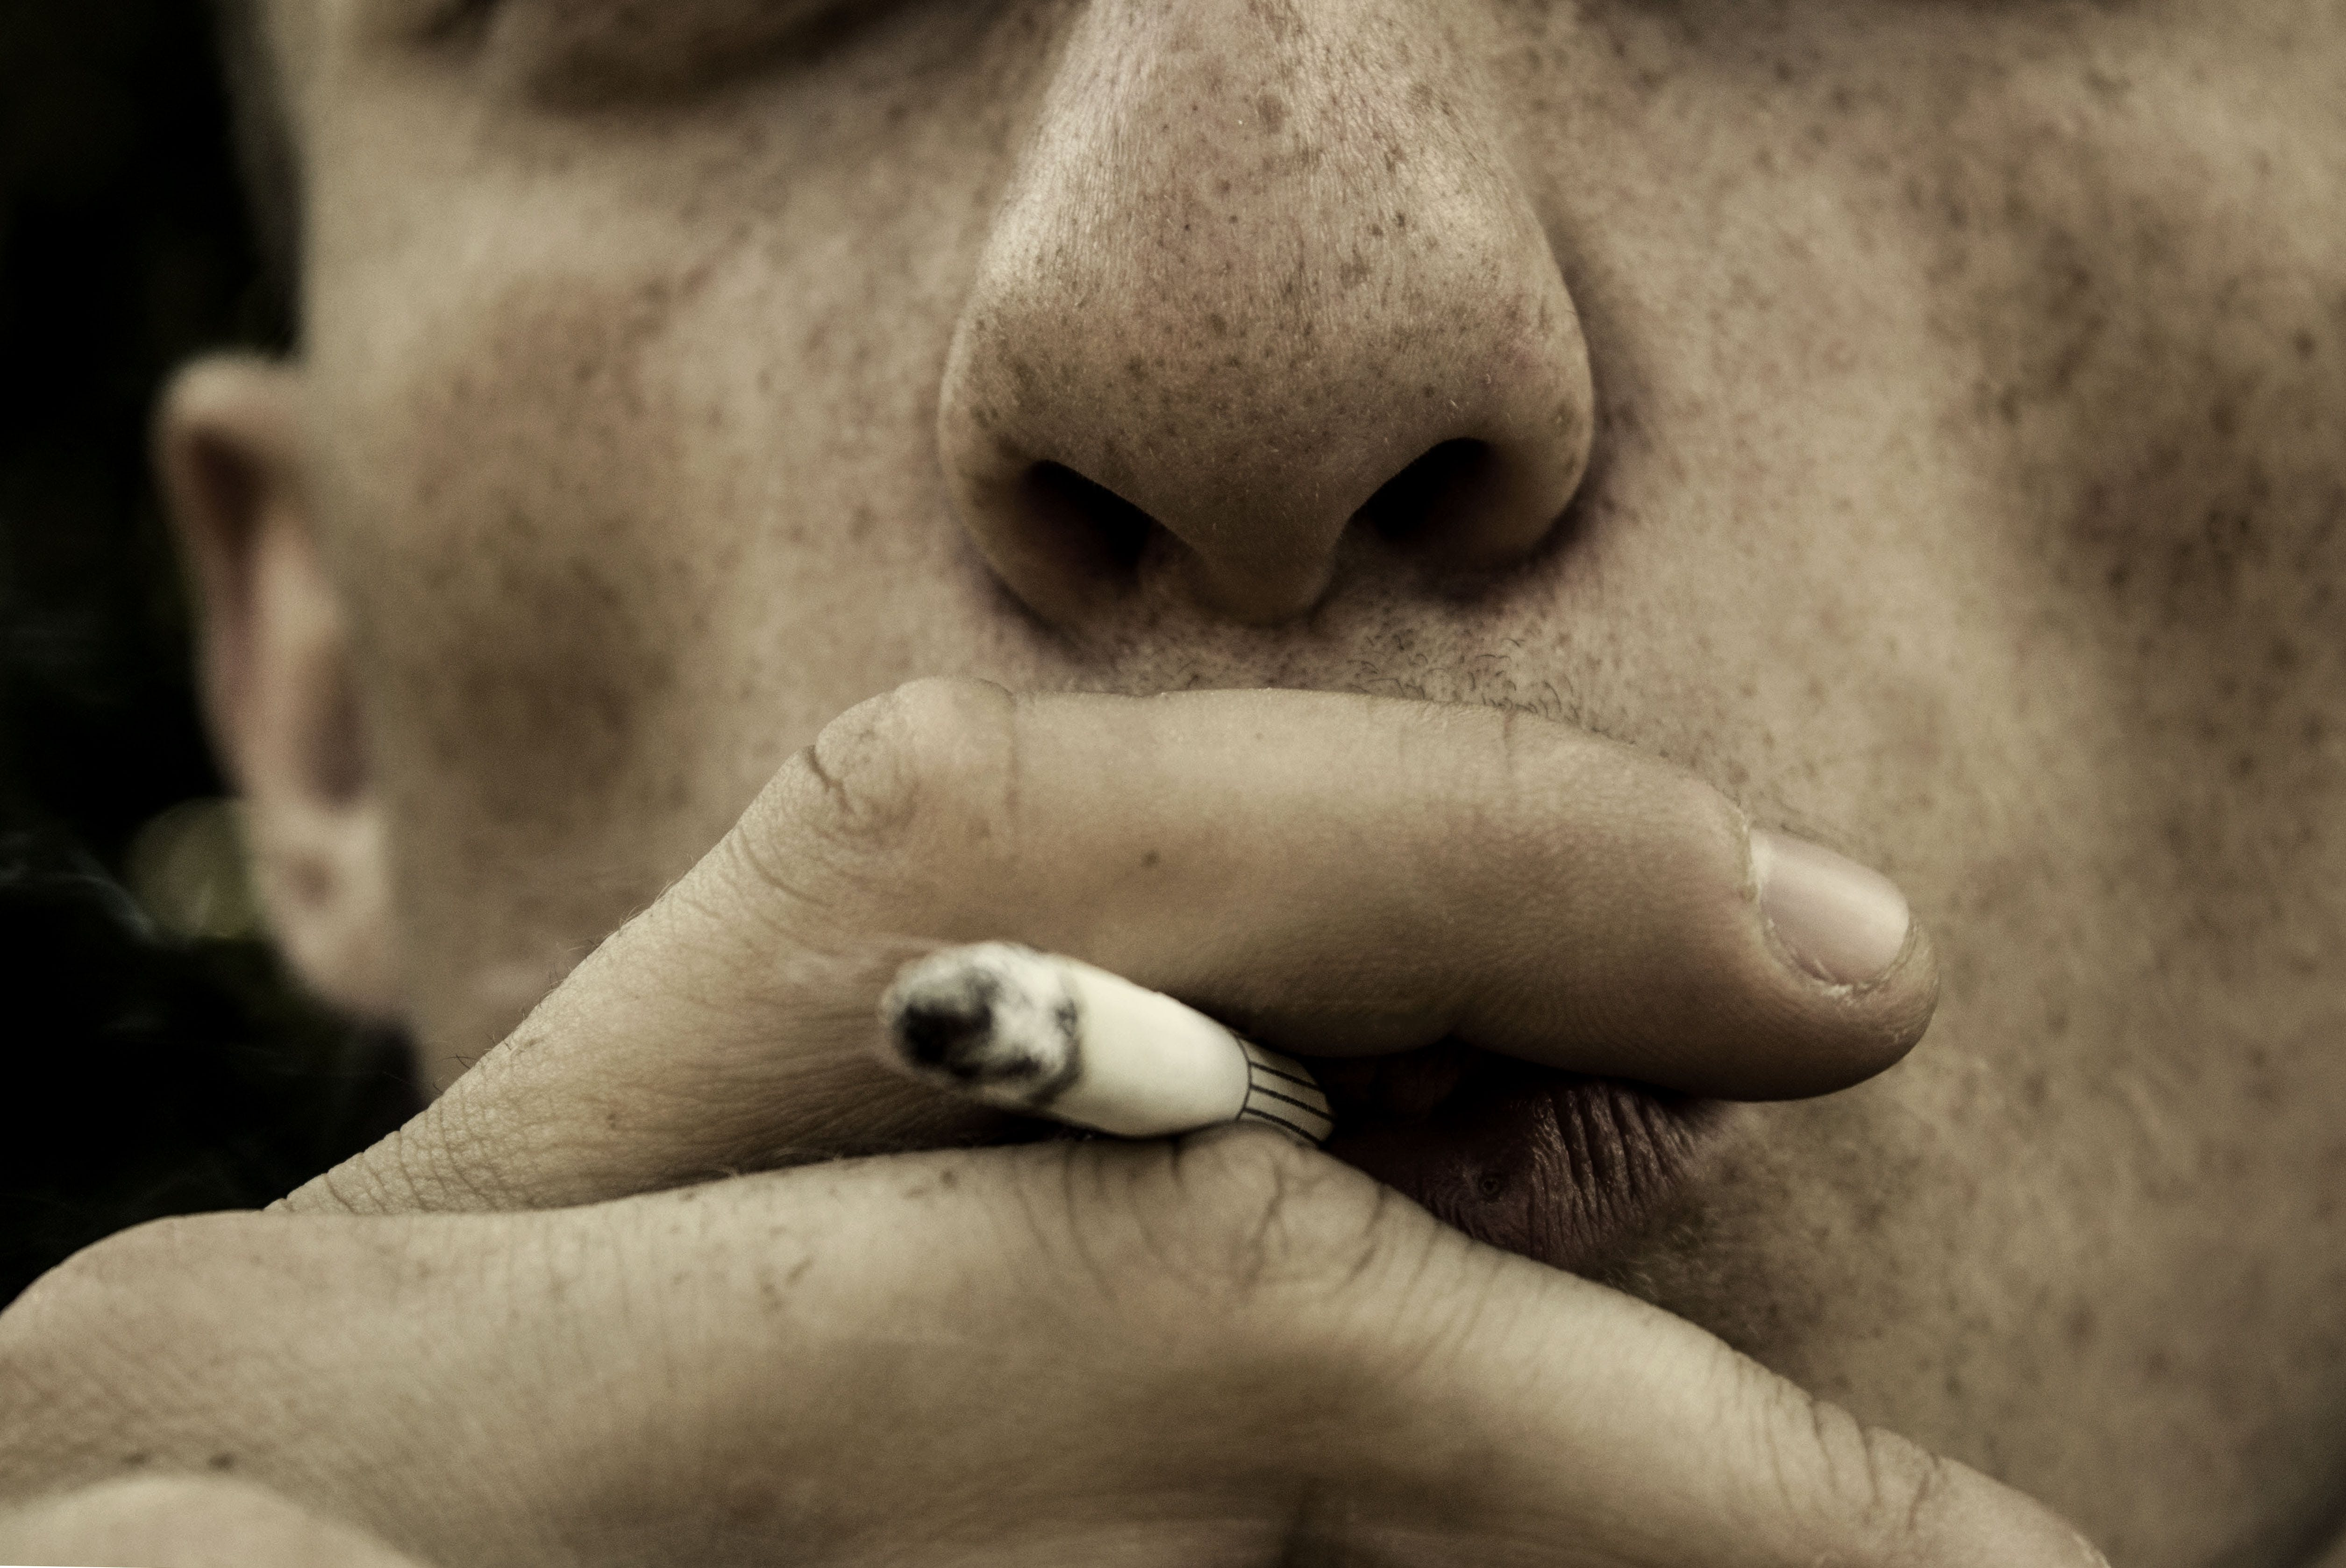 Free stock photo of man, person, hand, cigar